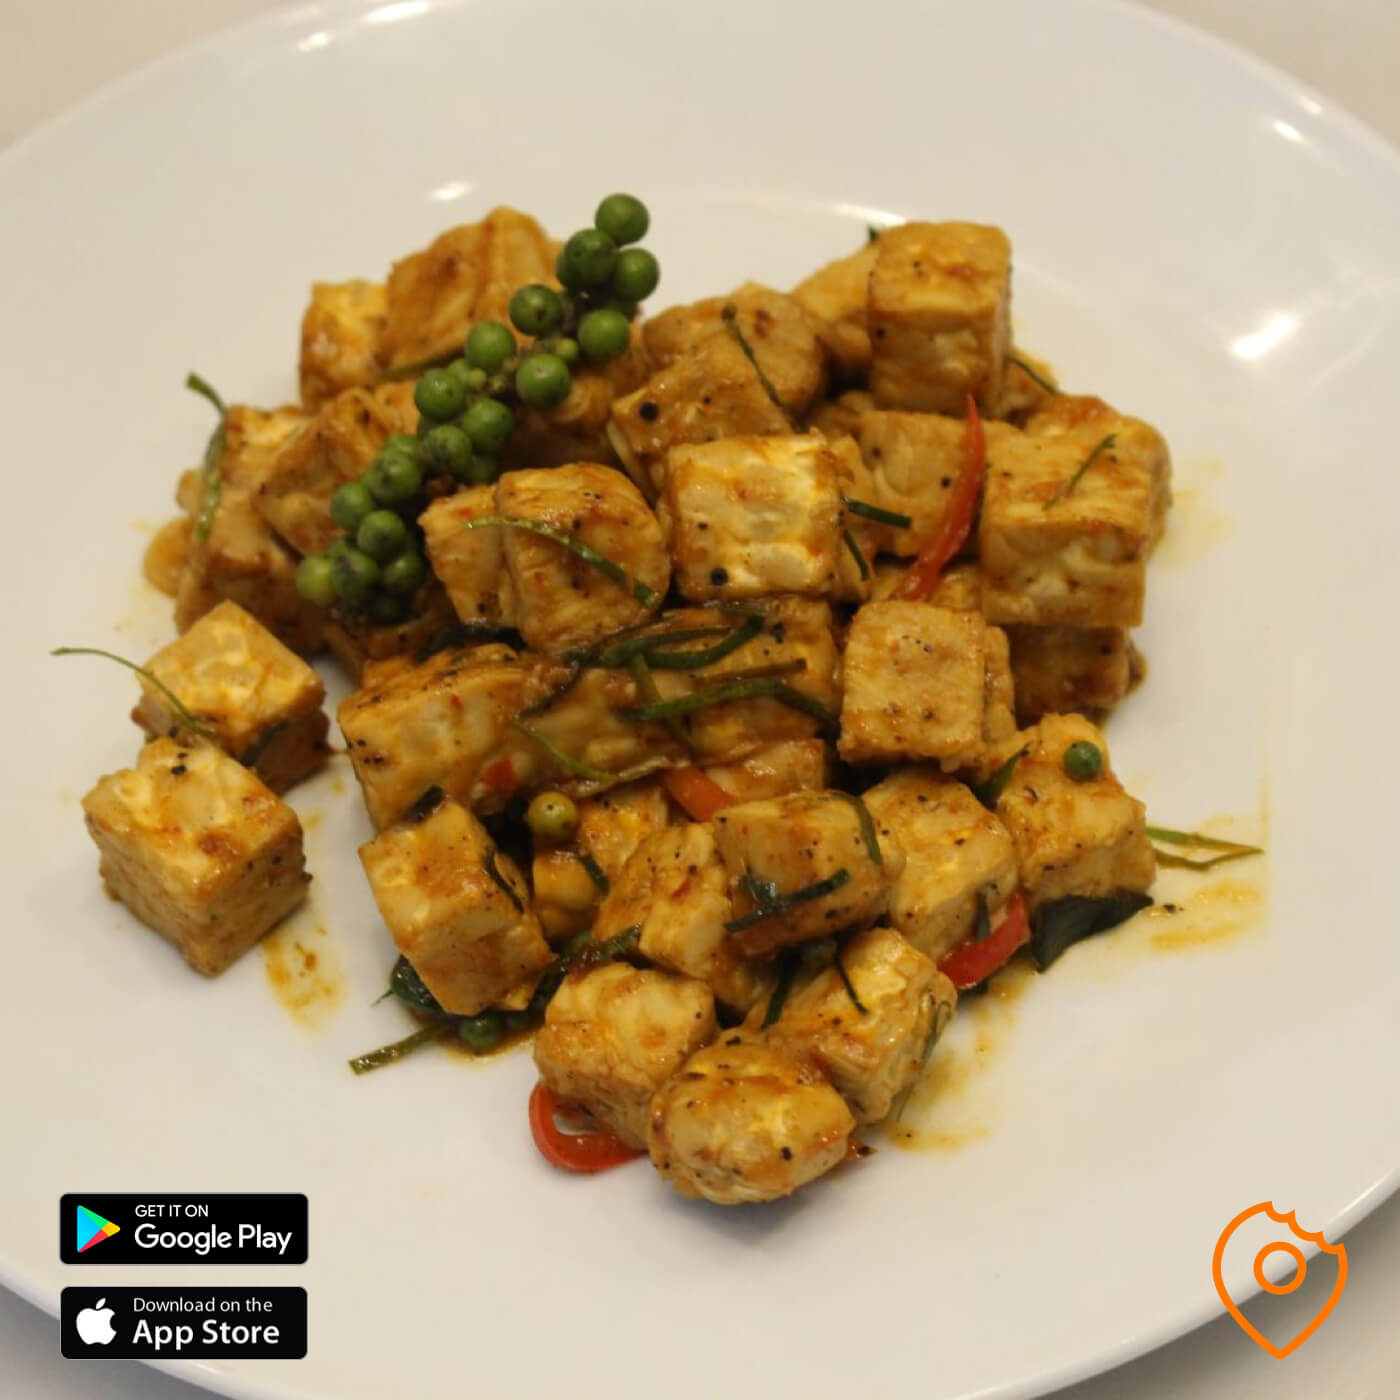 Southern Thai Spicy Stir Fry Tempeh